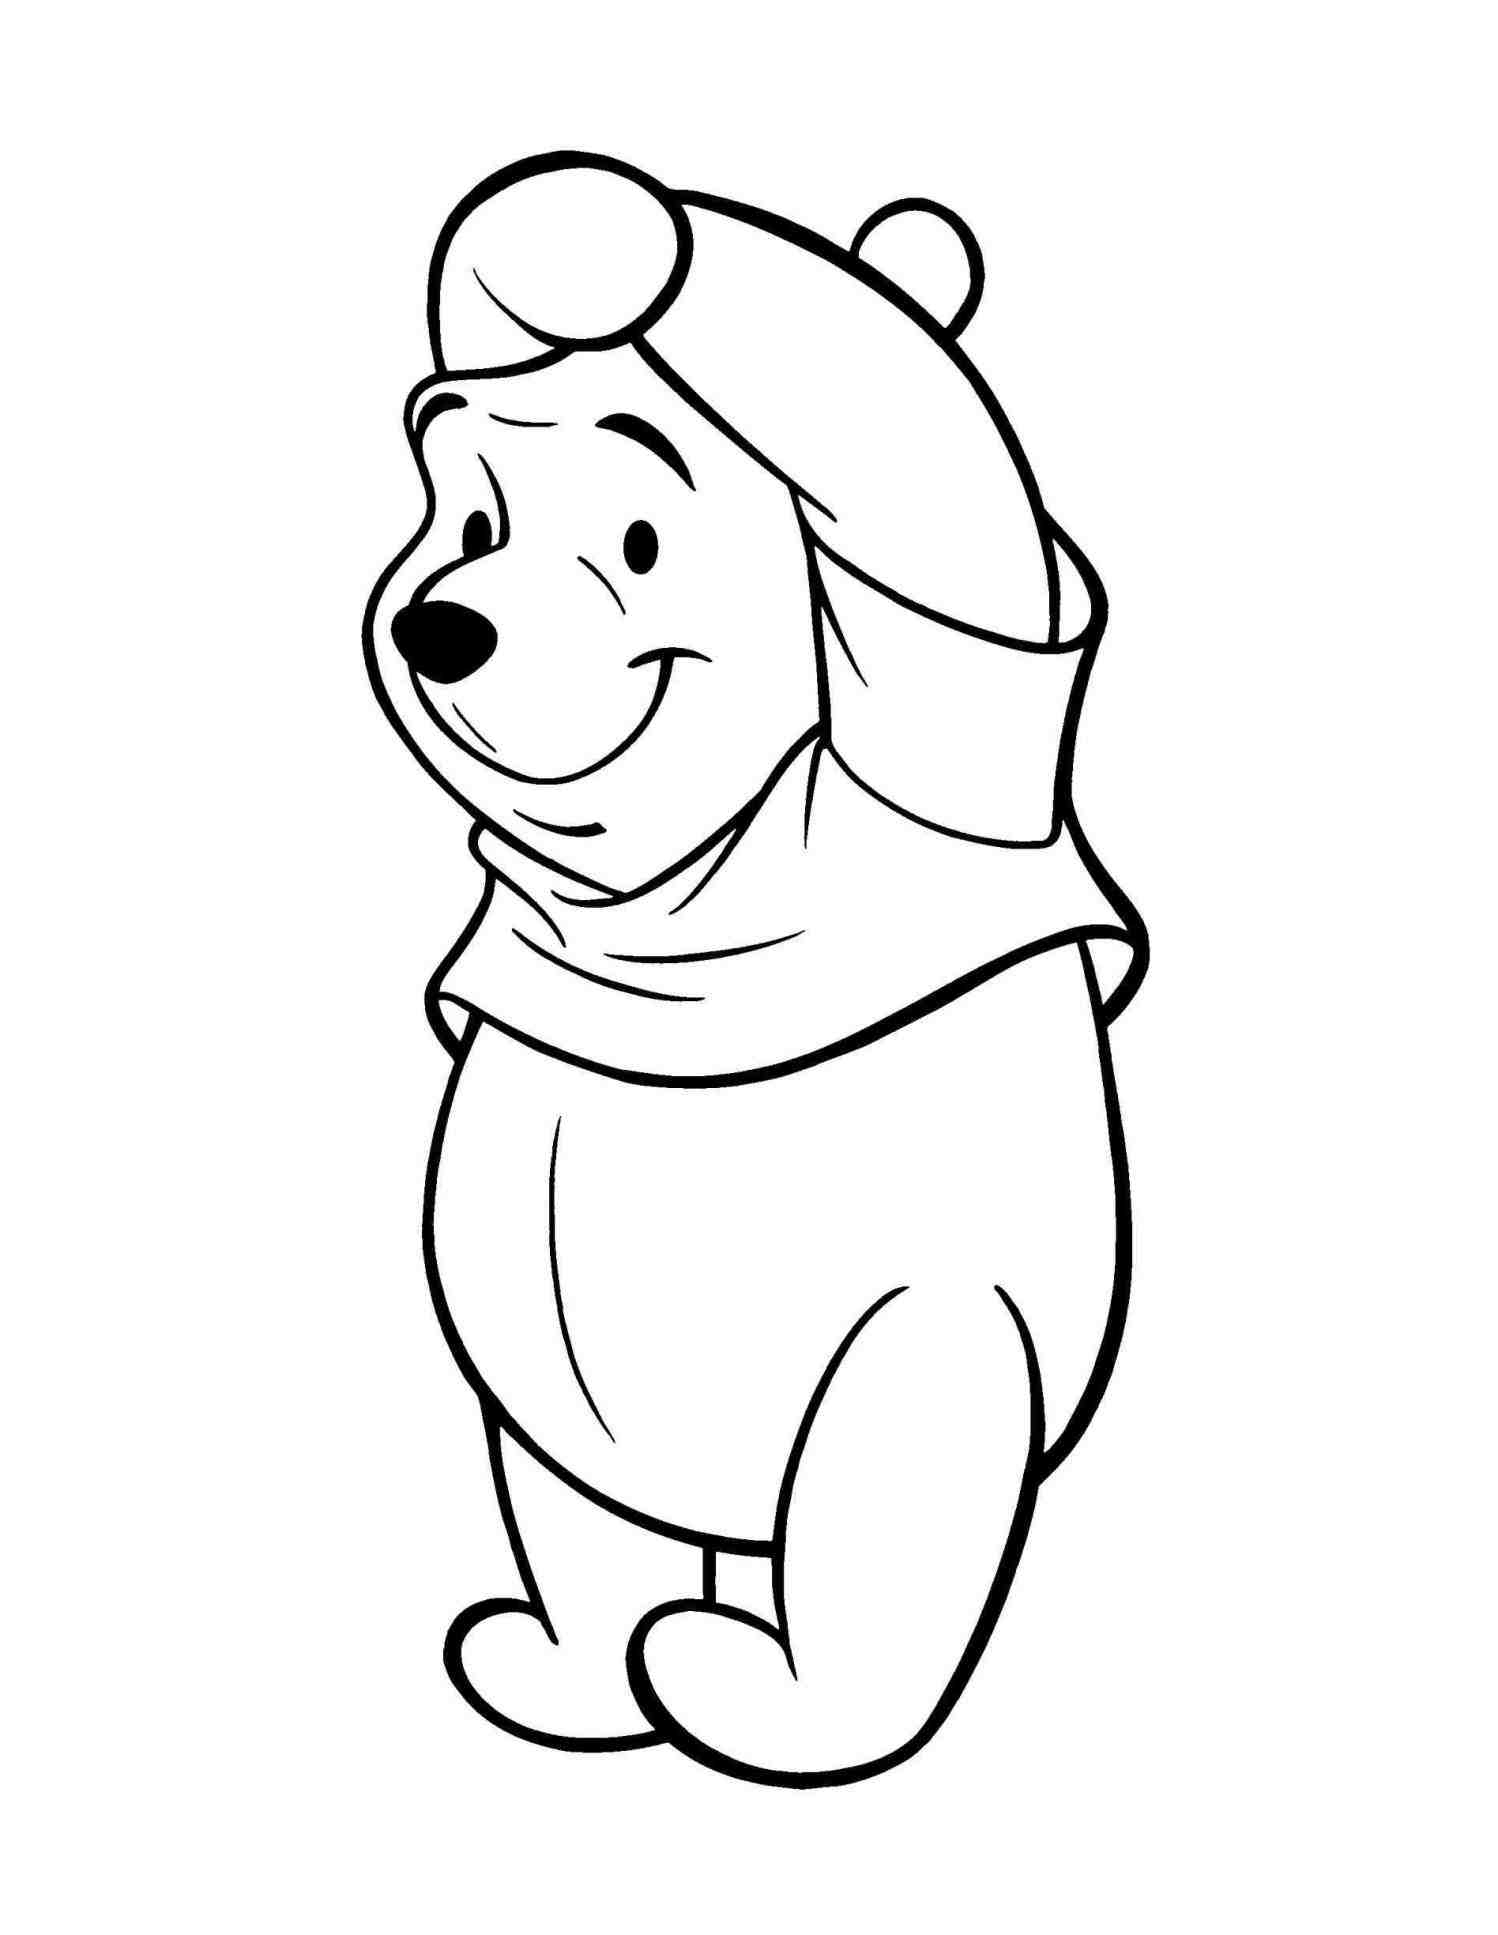 easy to draw characters easy disney characters drawing free download on clipartmag characters draw to easy